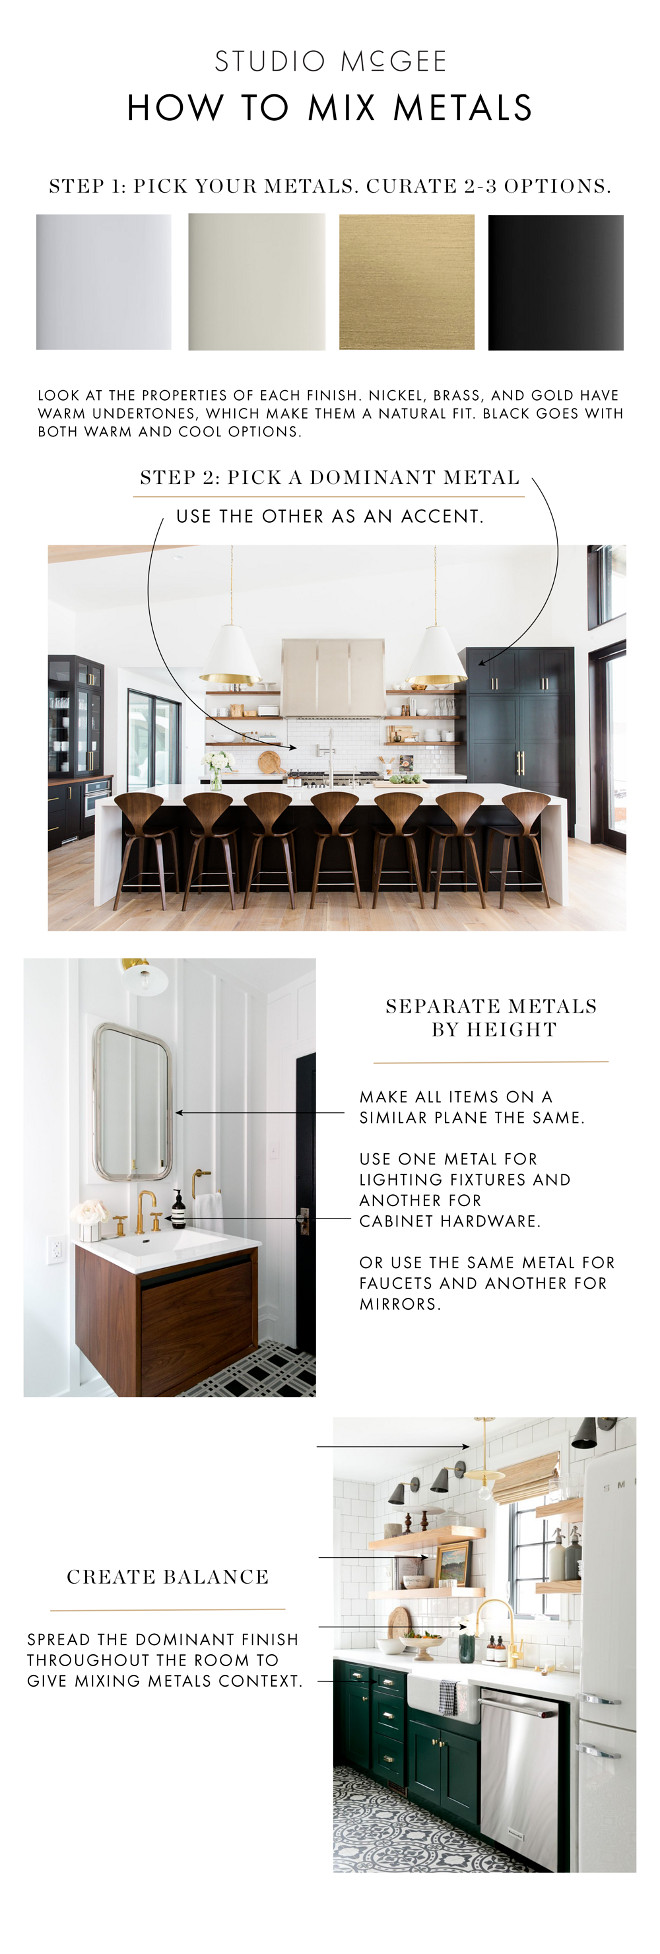 How to Mix Metal Finishes. How to Mix Metal Finishes Tips. How to Mix Metal Finishes. How to Mix Metal Finishes. How to Mix Metal Finishes #HowtoMixMetalFinishes #MixMetalFinishes #MetalFinishesTips Via Studio McGee